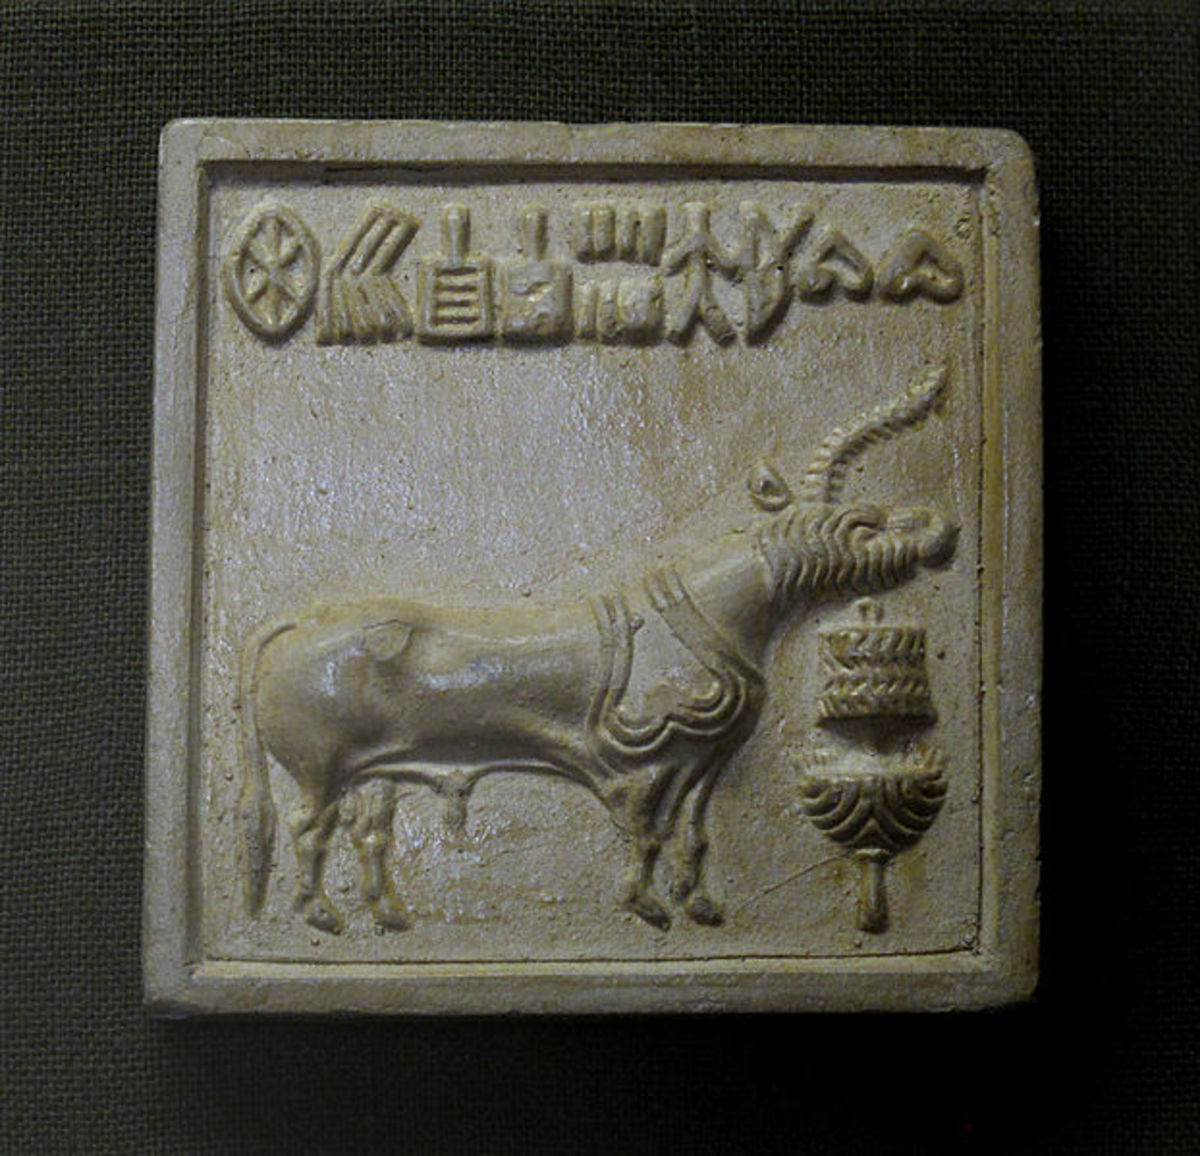 Unicorn Mold of a seal from the Indus valley civilization, 2500-1500 BC.